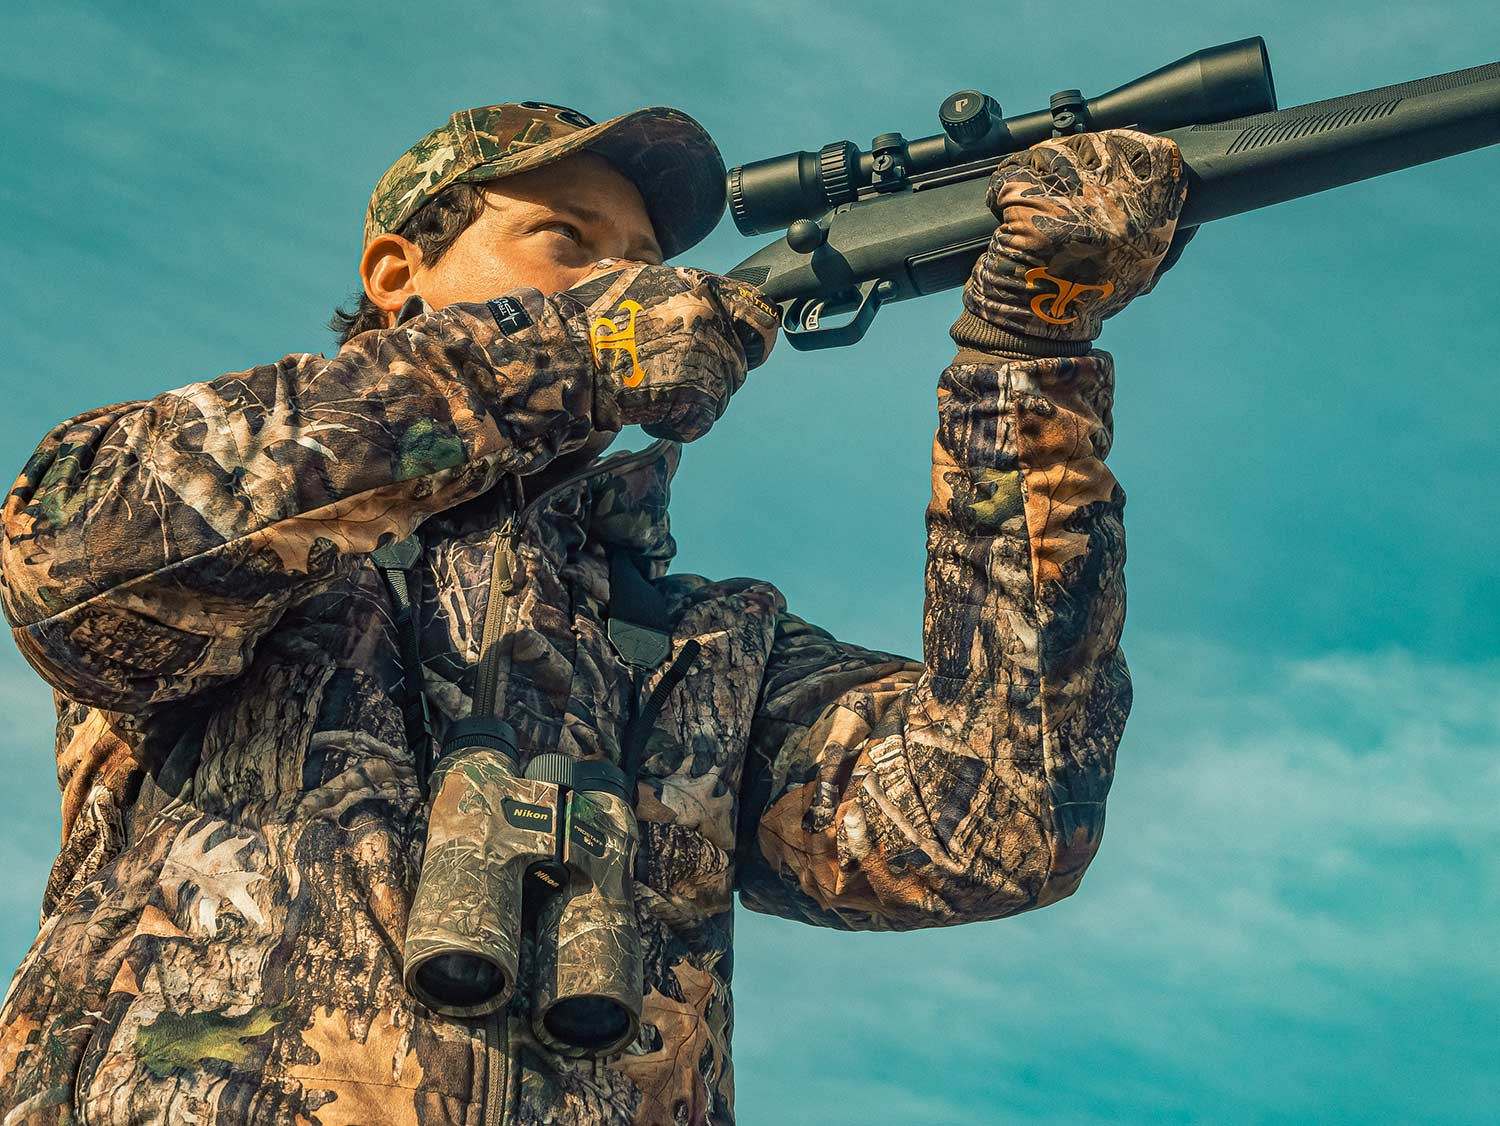 A hunter holds a rifle up to their shoulder.